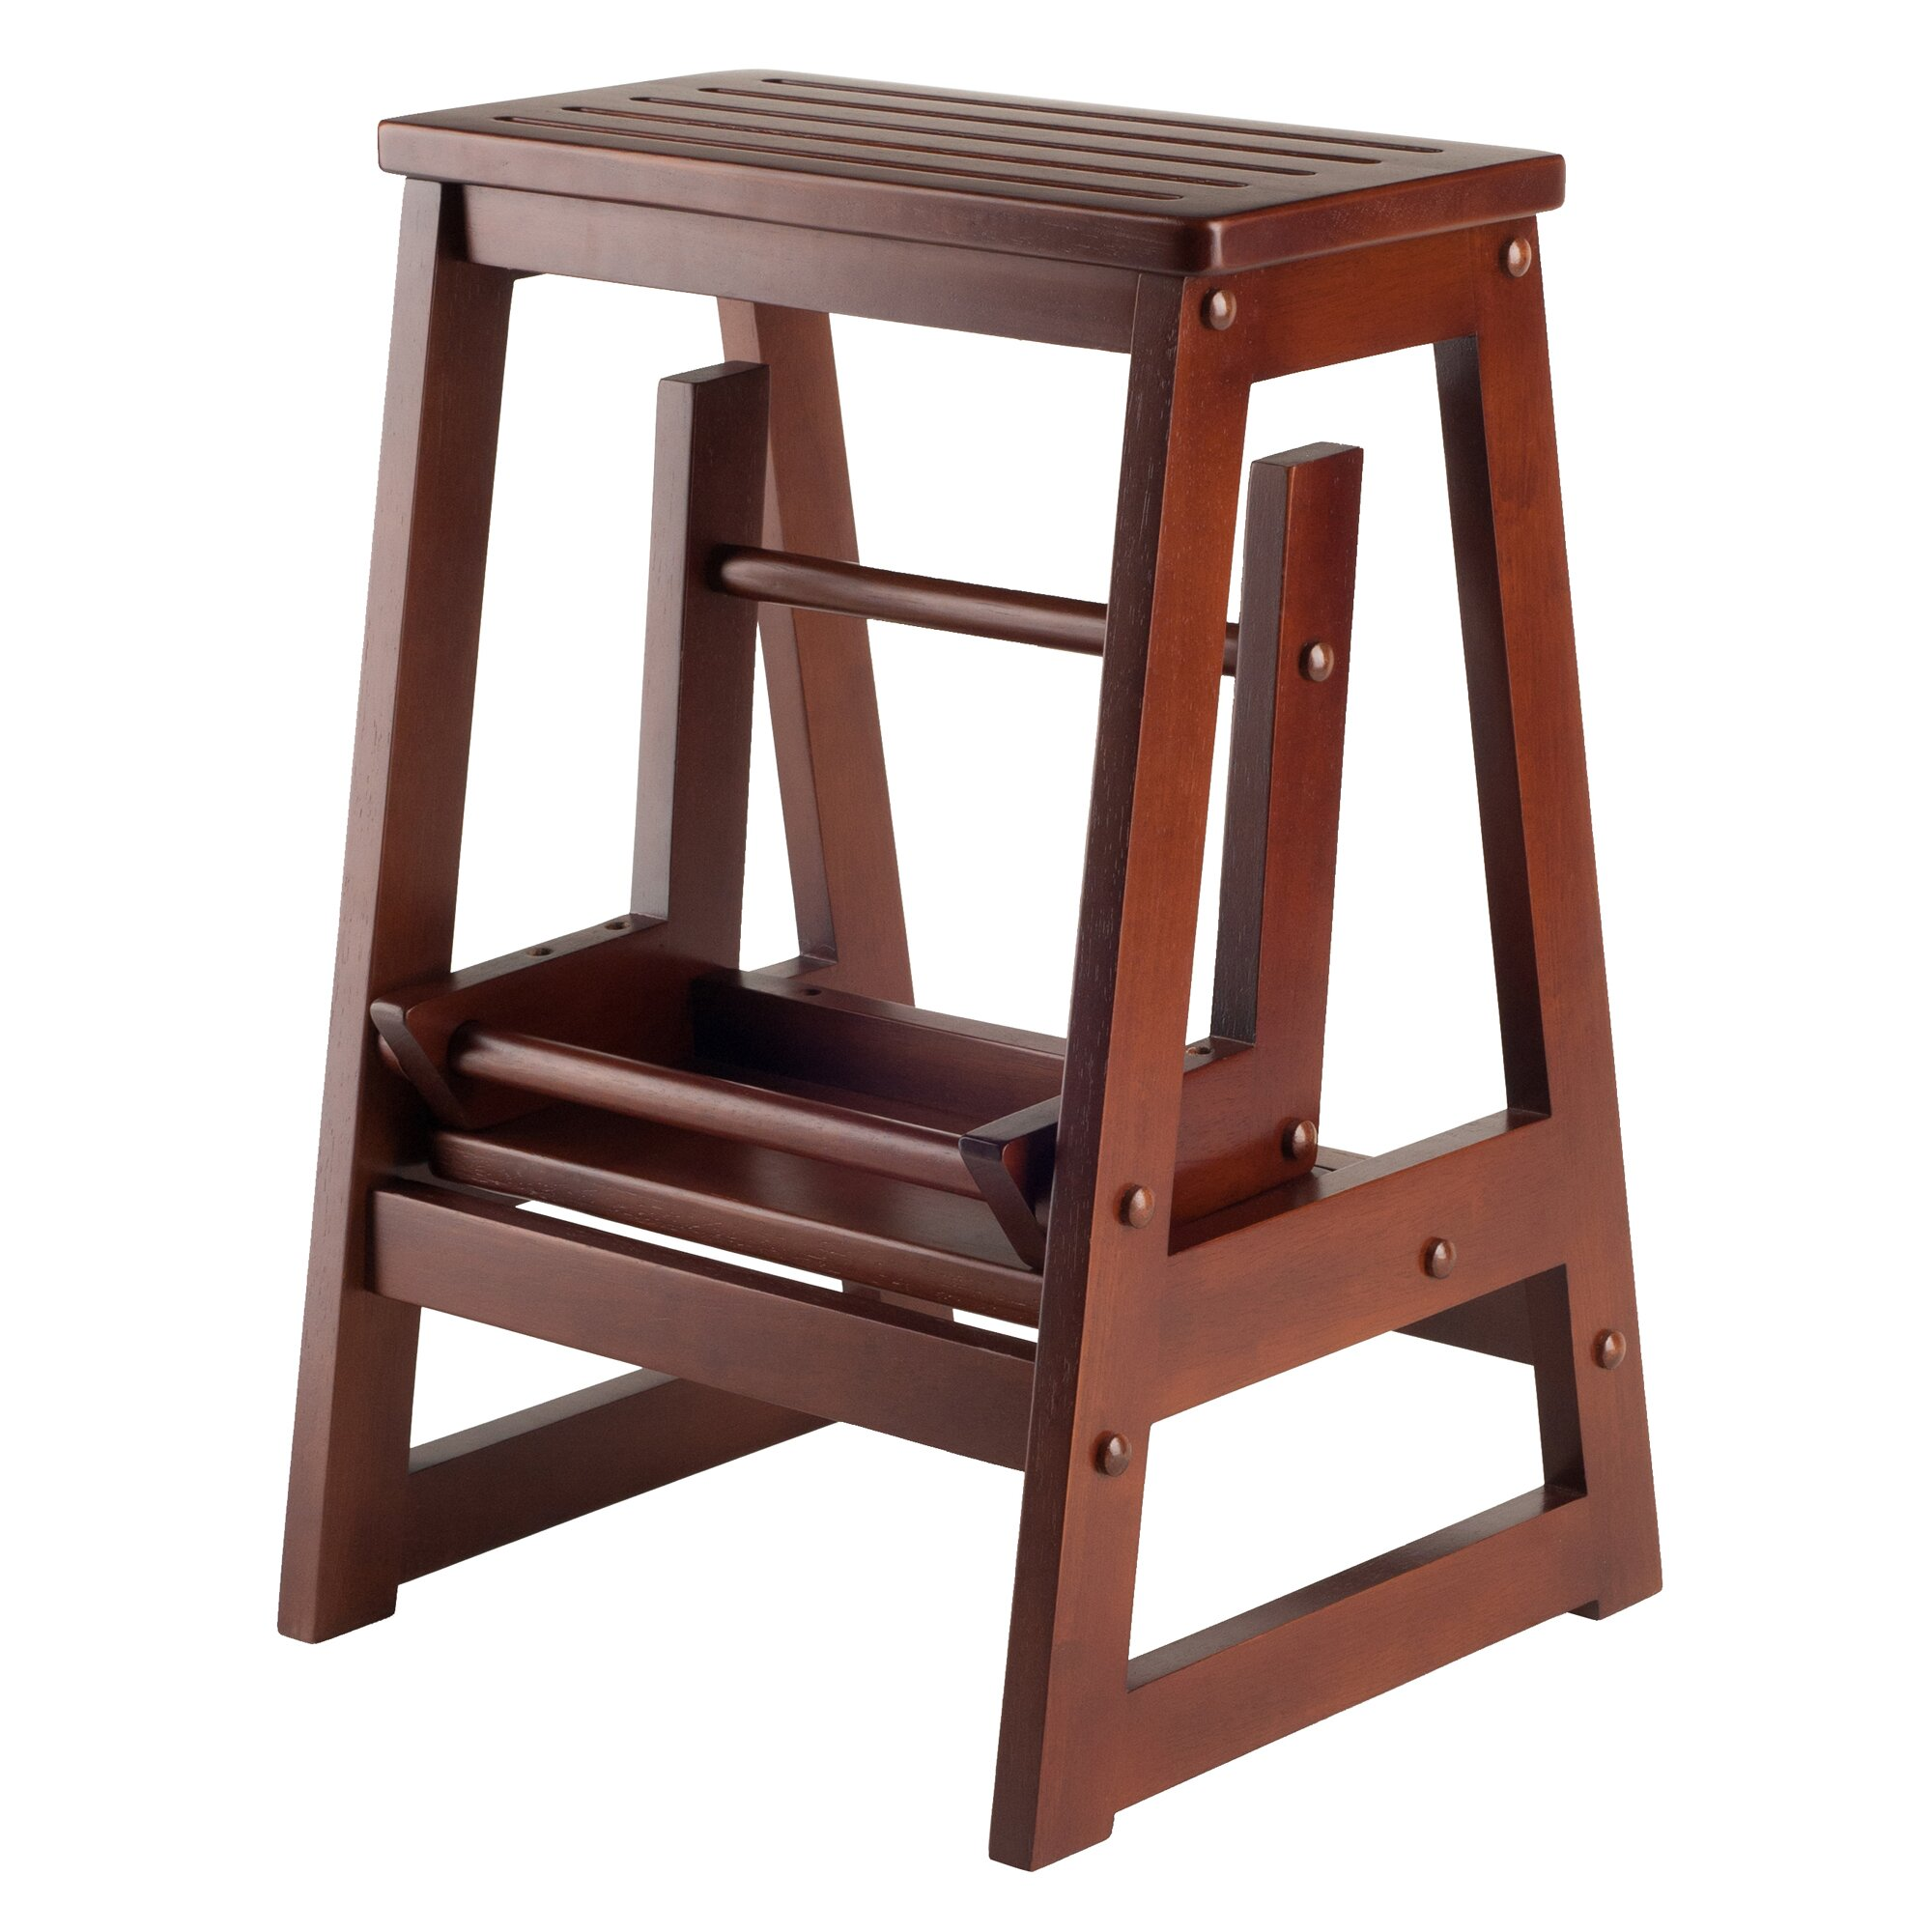 2 Step Wood Step Stool with 200 lb  Load Capacity. Step Stools You ll Love   Wayfair